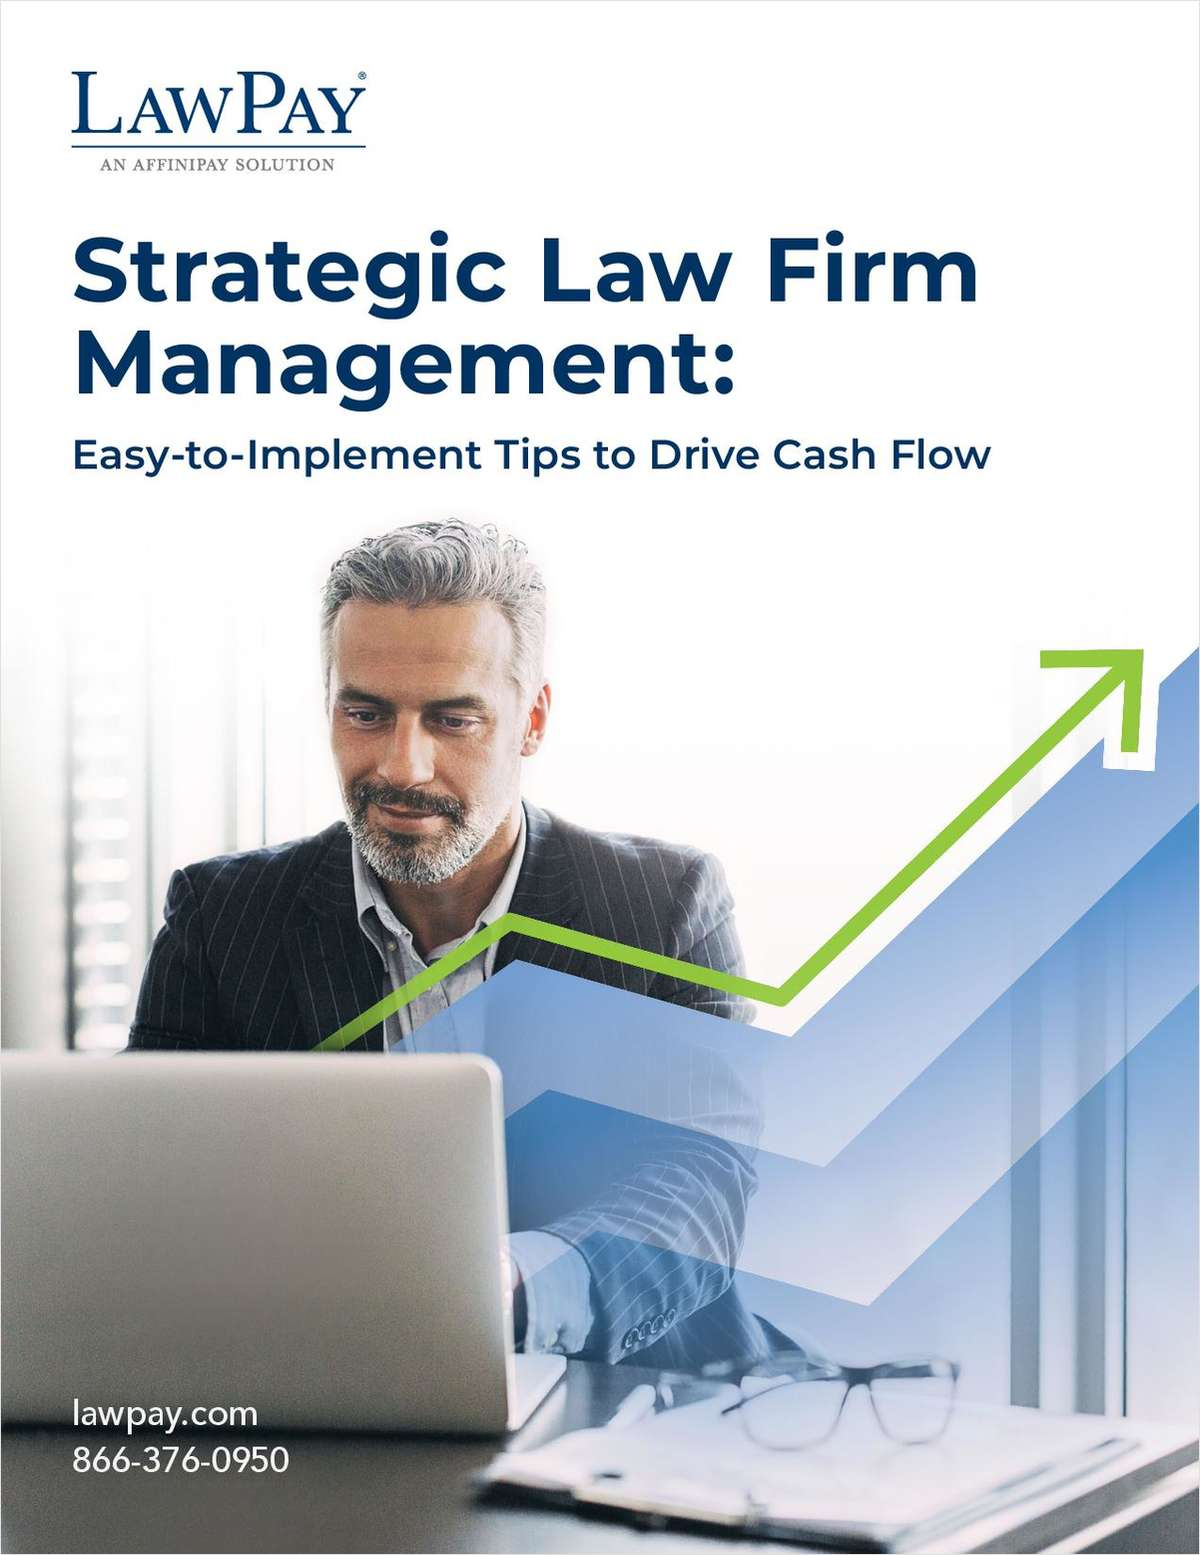 Strategic Law Firm Management: Easy-to-Implement Tips to Drive Cash Flow